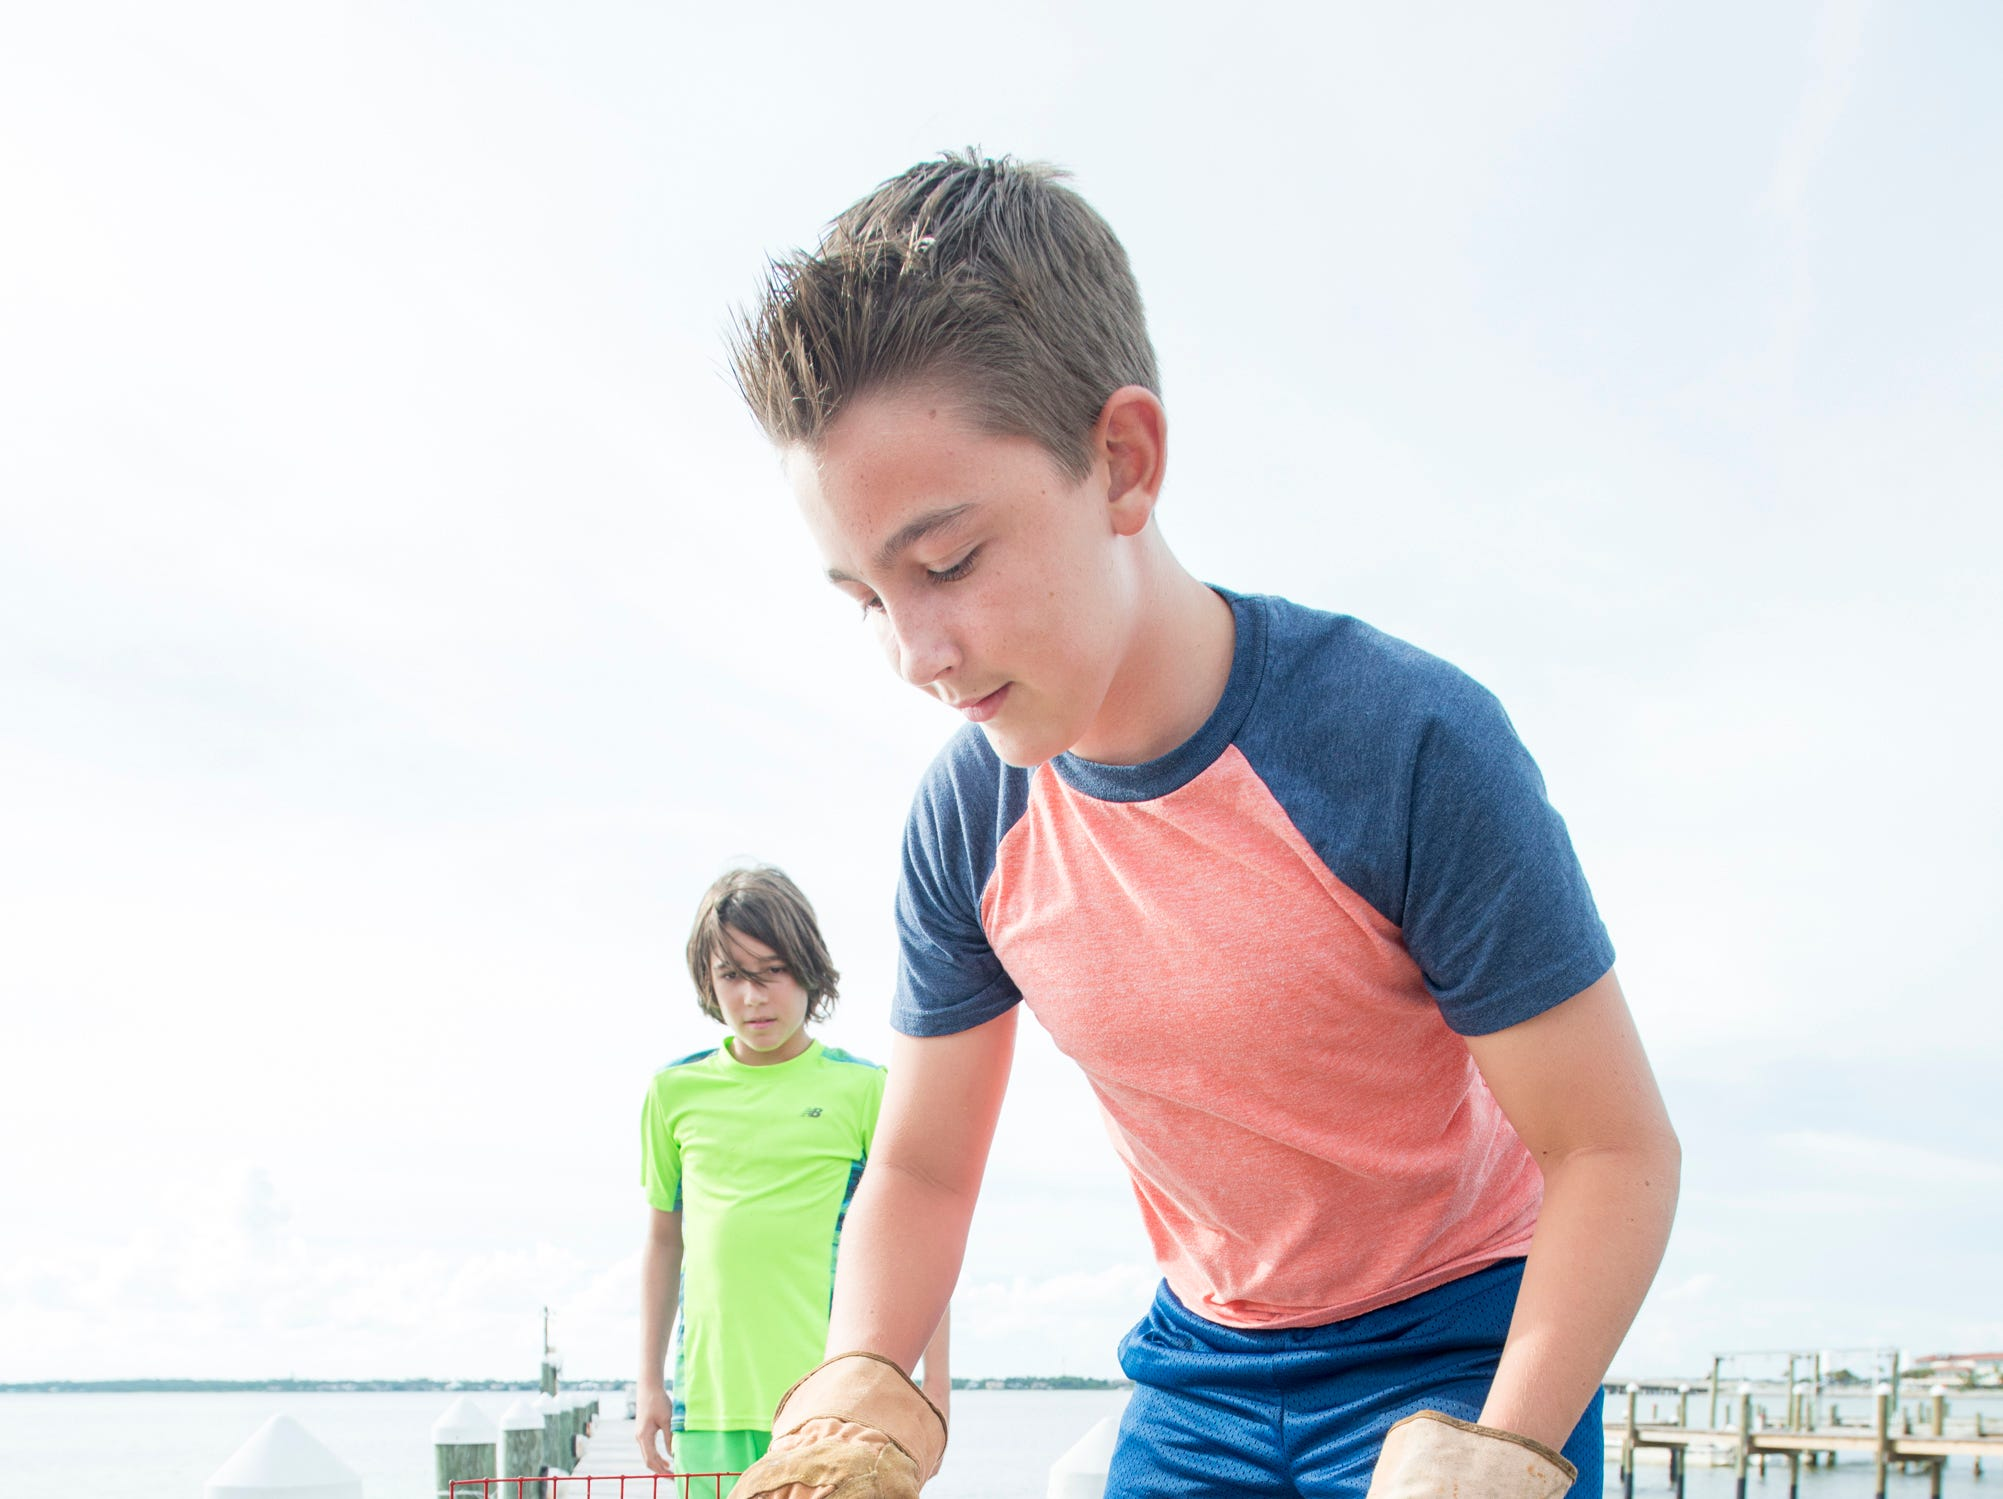 Ryan Kalb, 10, left, looks on as his brother Ben Kalb, 12, removes the three-clawed blue crab that he recently caught from the trap behind their home on Little Sabine Bay in Pensacola.   Thursday, August 9, 2018.